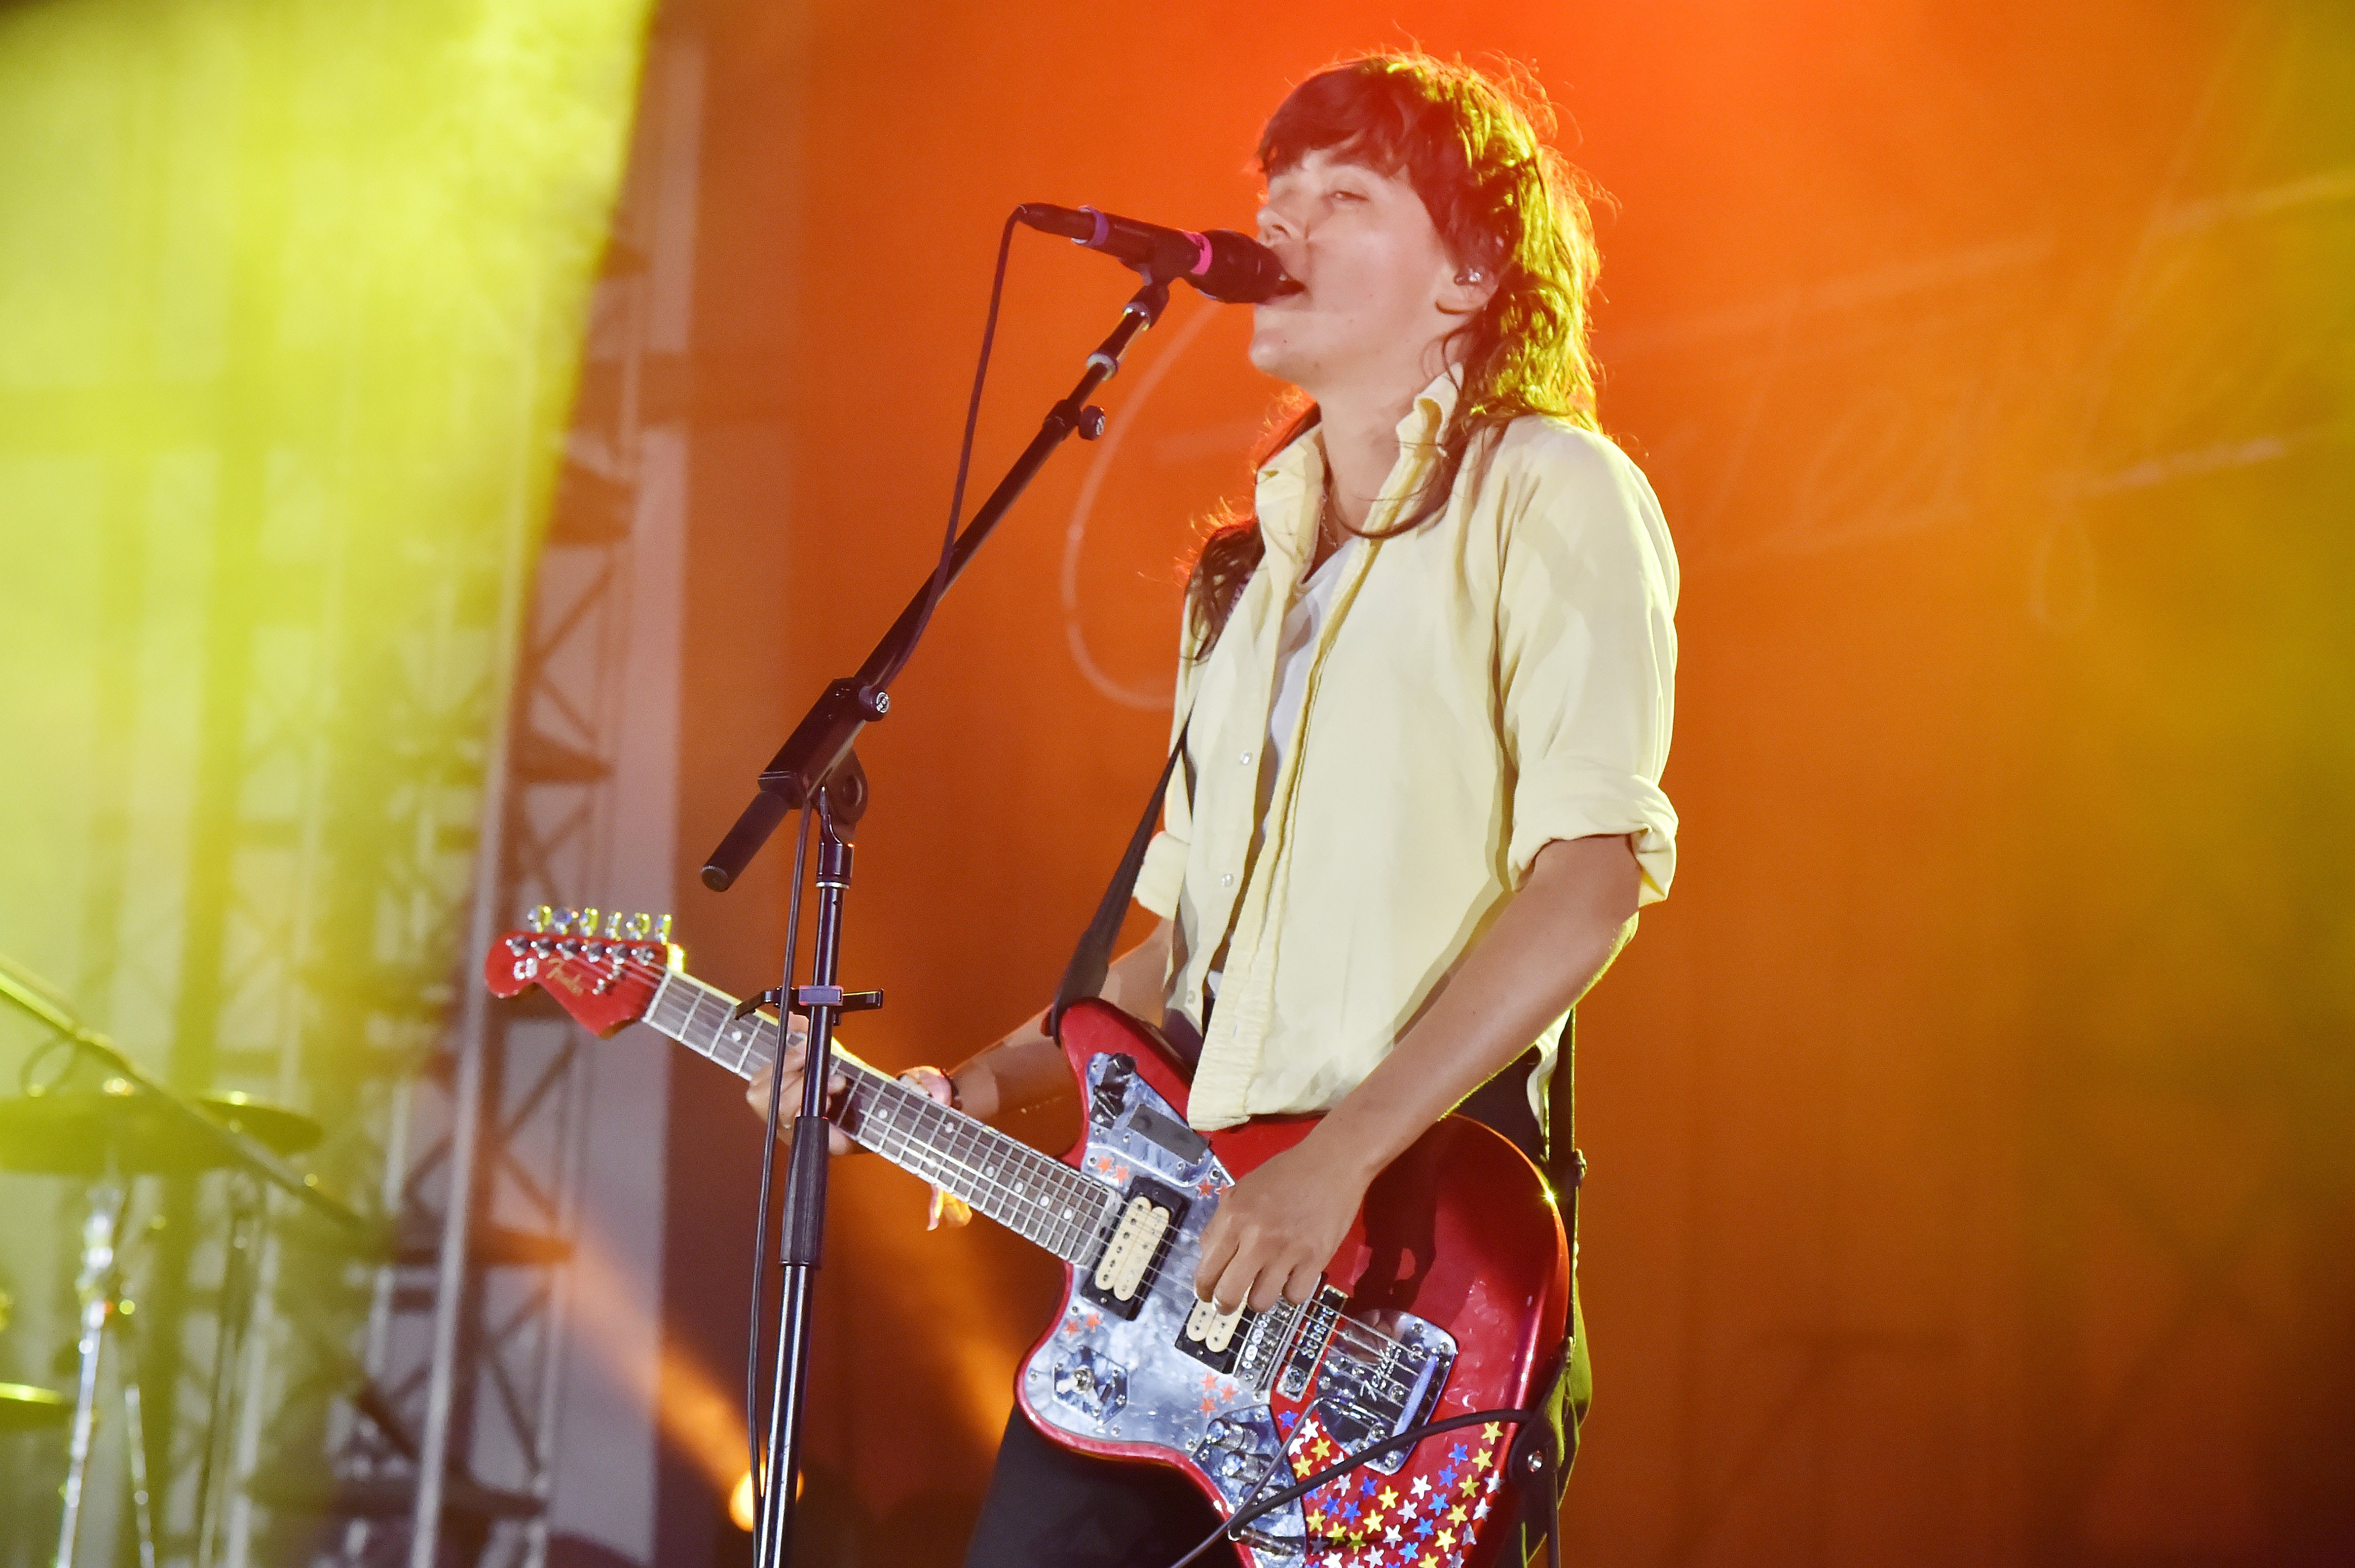 courtney-barnett-joins-wilco-to-perform-handshake-drugs-at-solid-sound-festival-watch